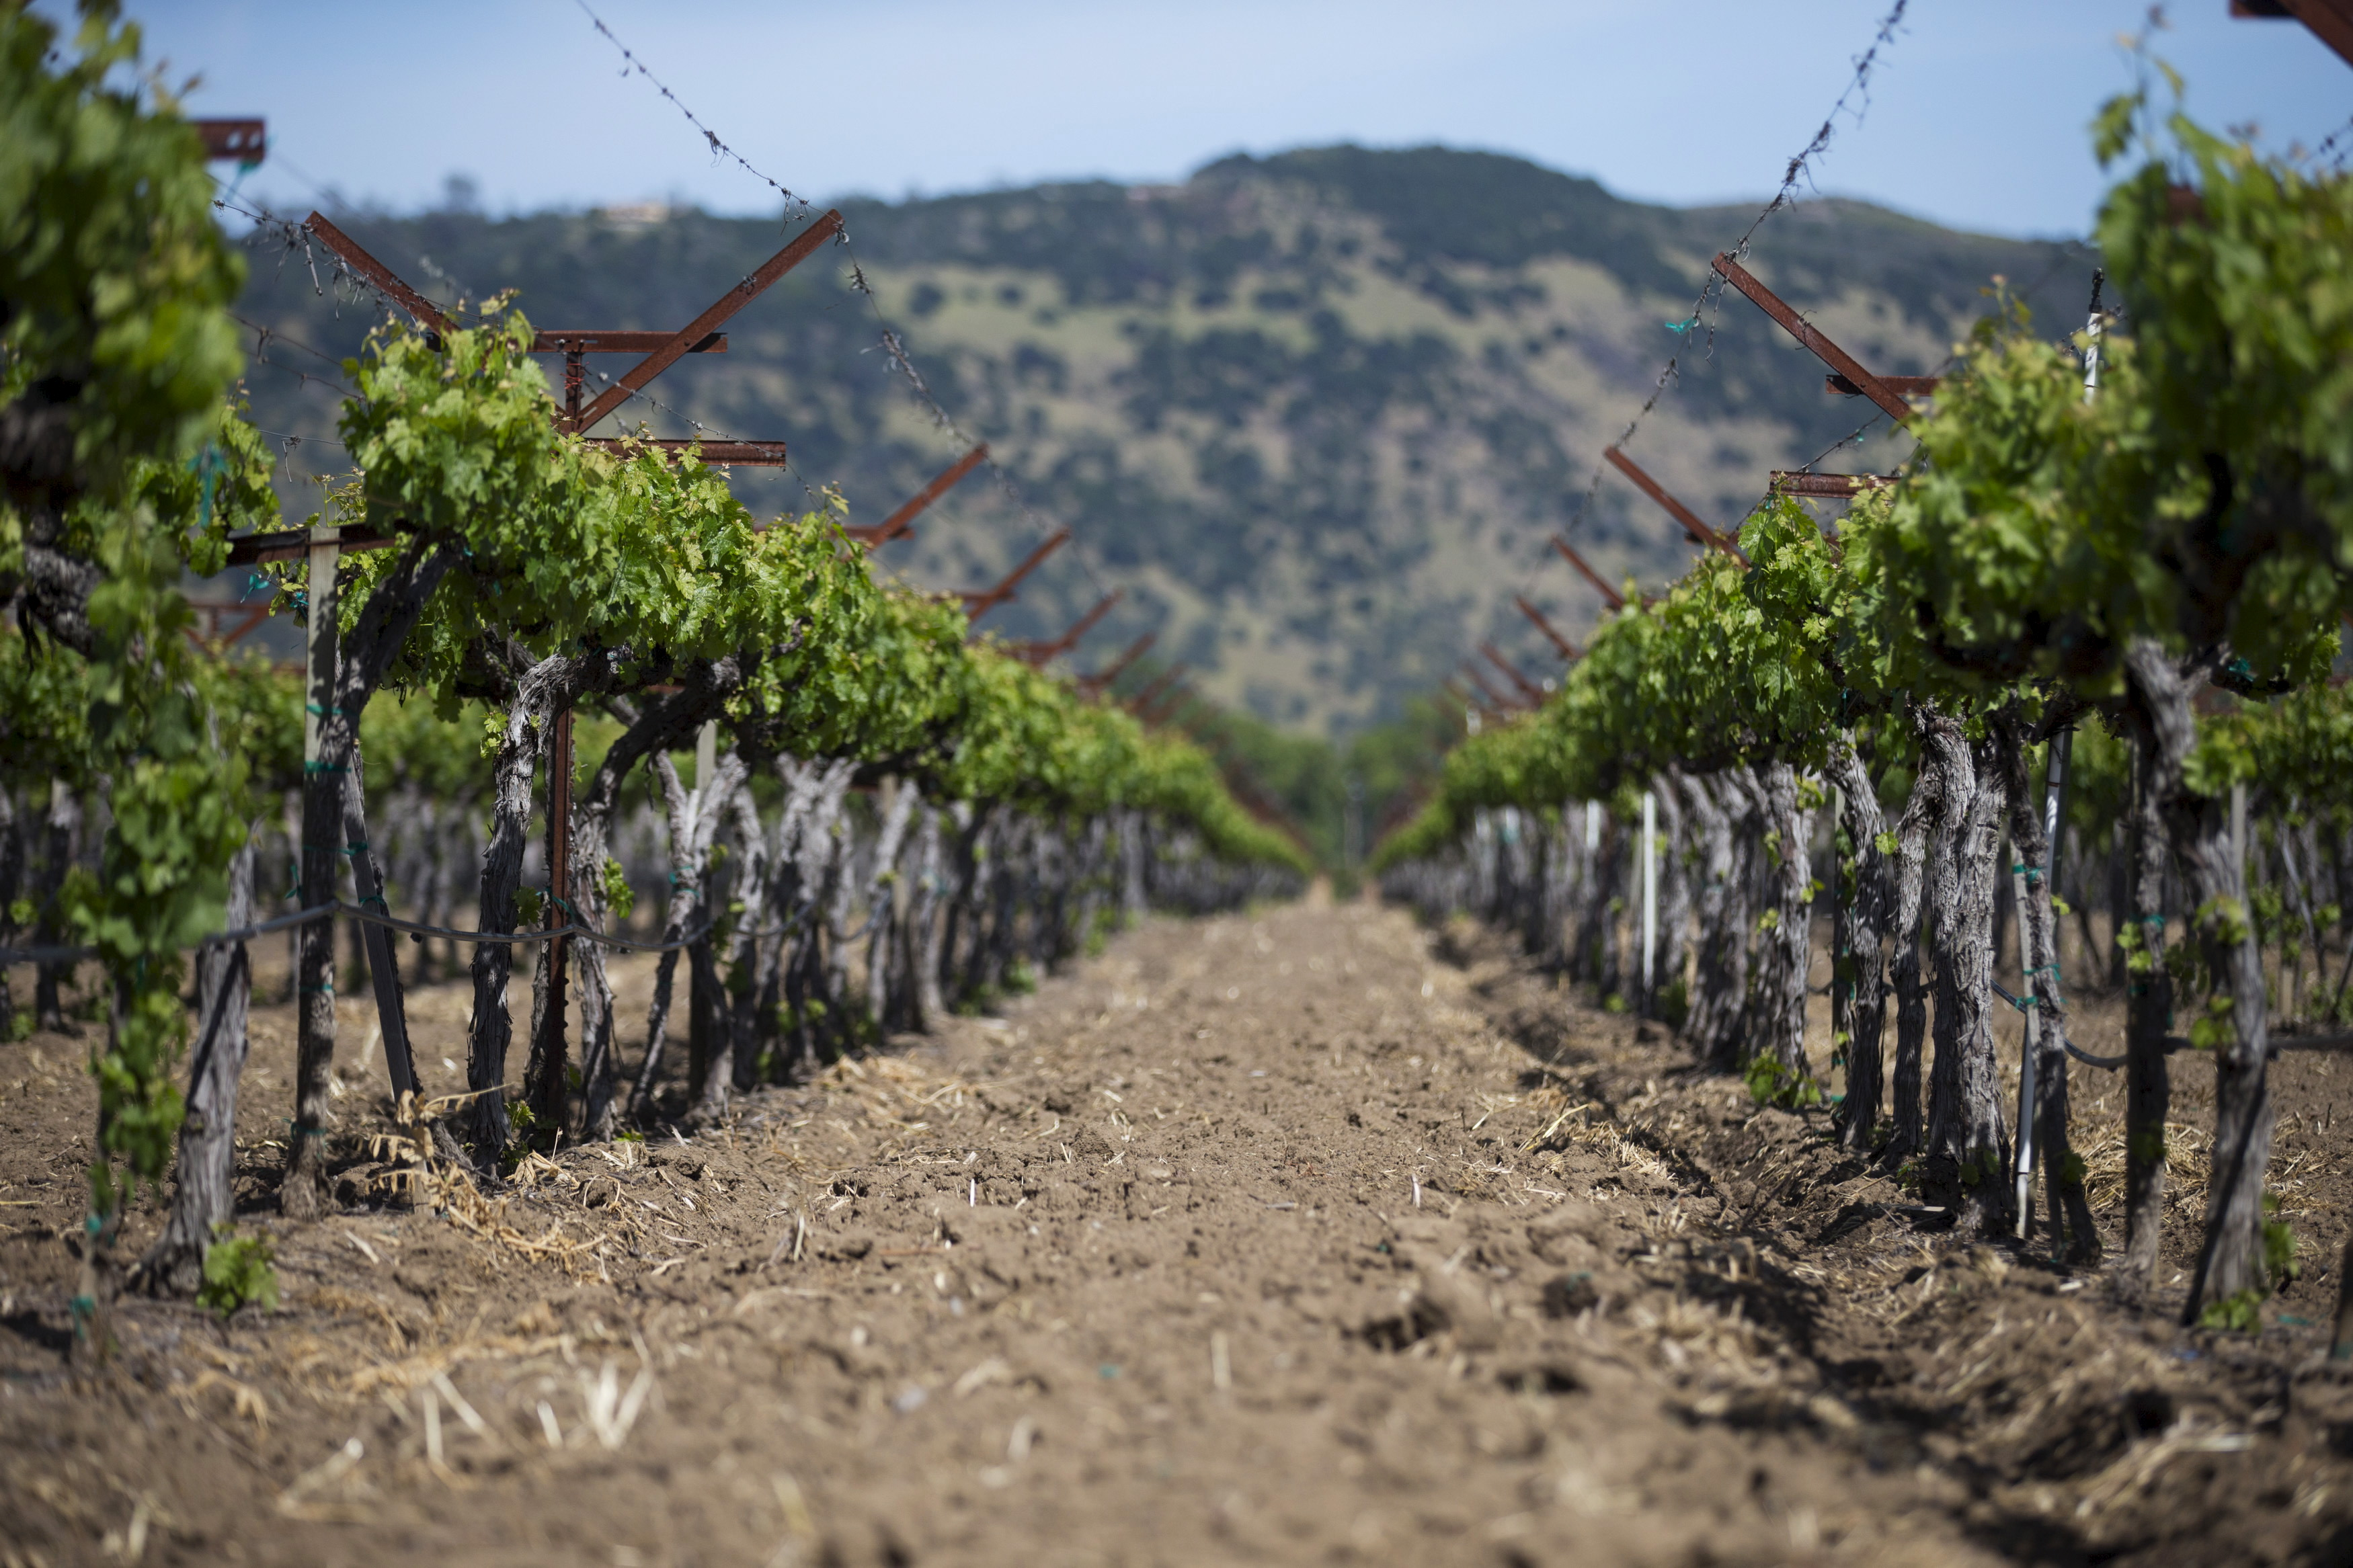 Dry earth is seen between rows of grapevines in Napa, California April 9, 2015. The state is in the fourth year of one of the worst droughts on record.